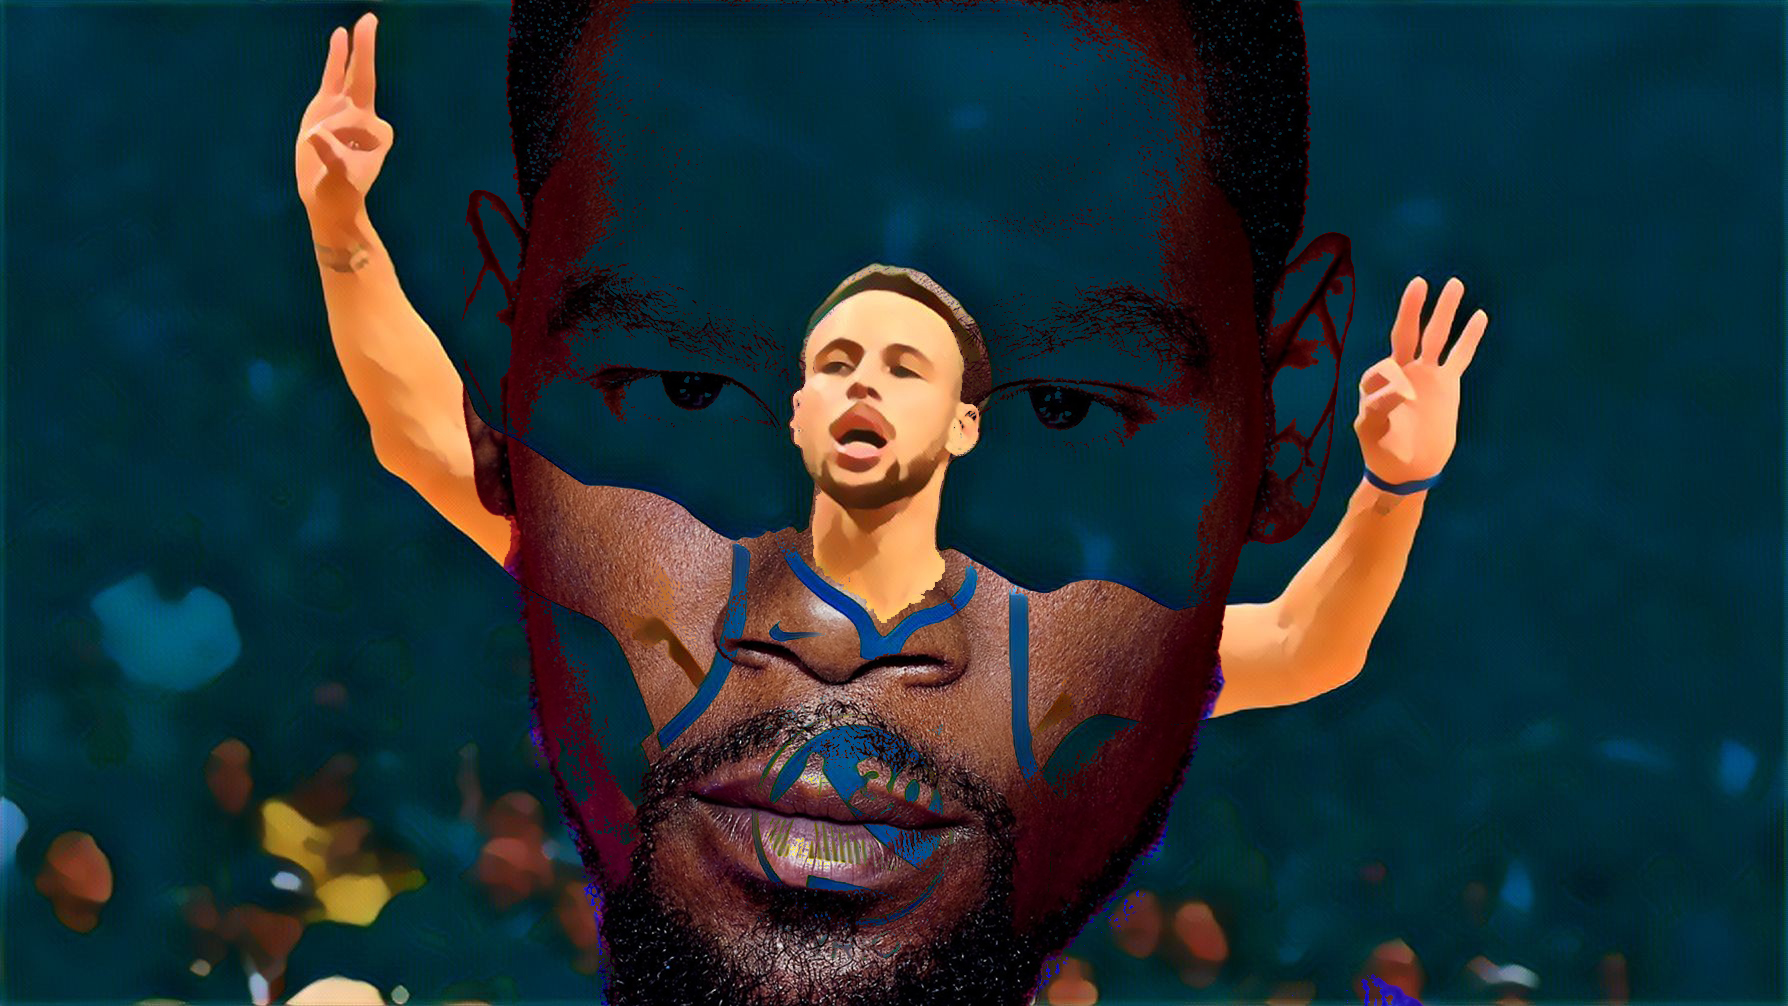 UnmakingStephCurry.jpg